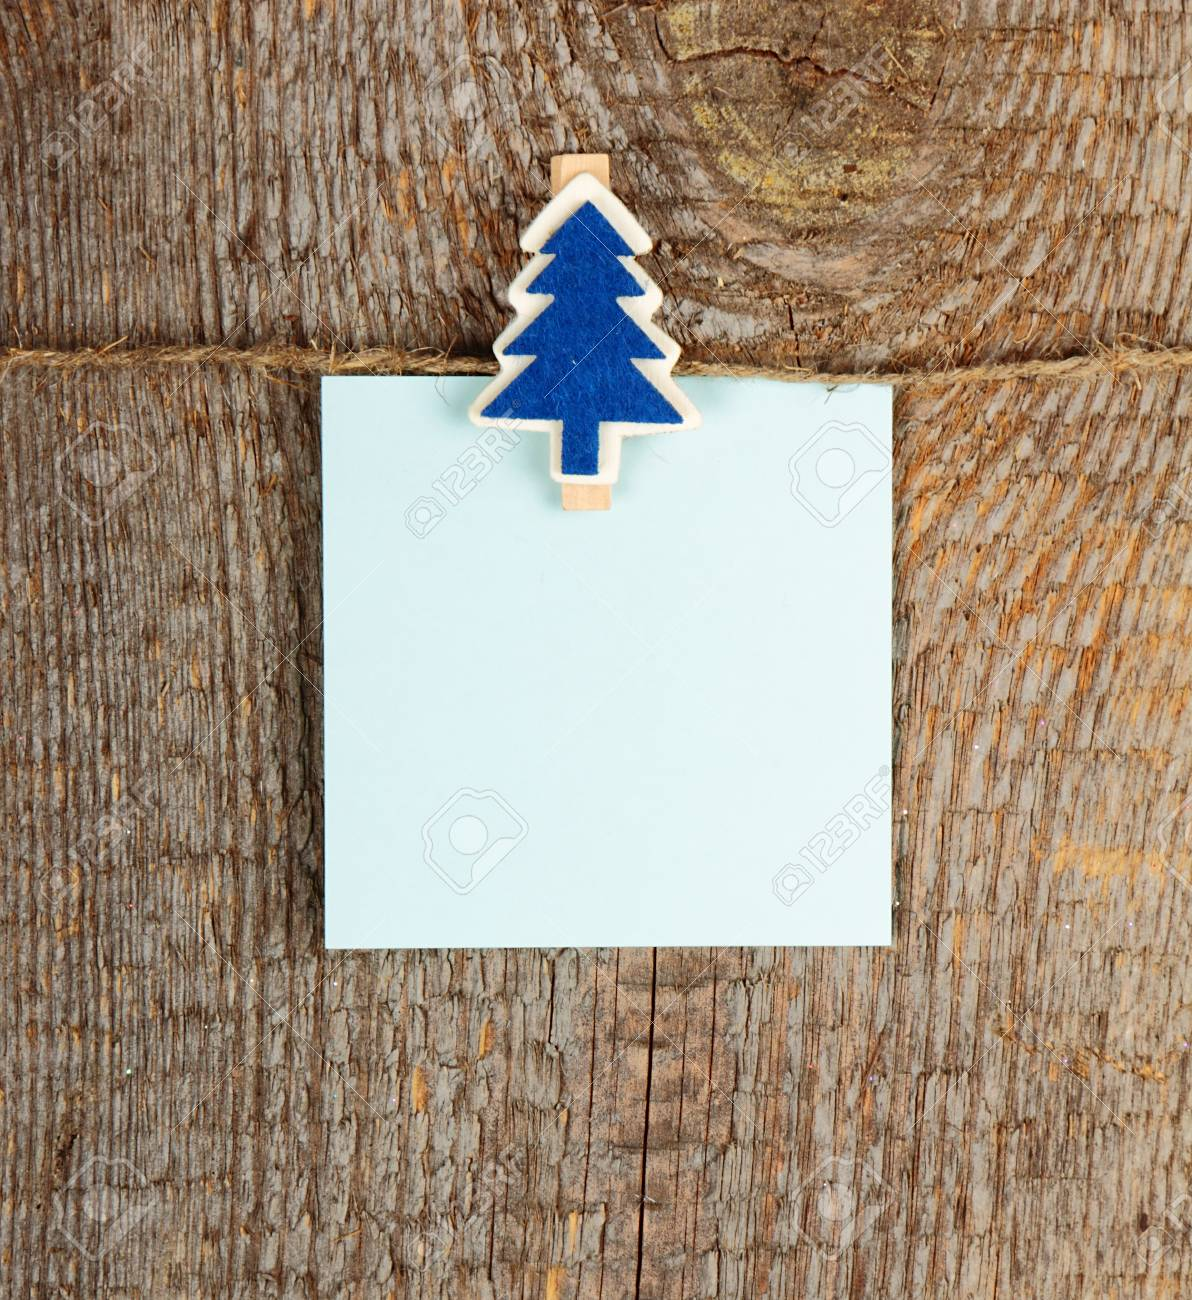 Clothes-peg in shape of Christmas tree on old wooden background Stock Photo - 24368311